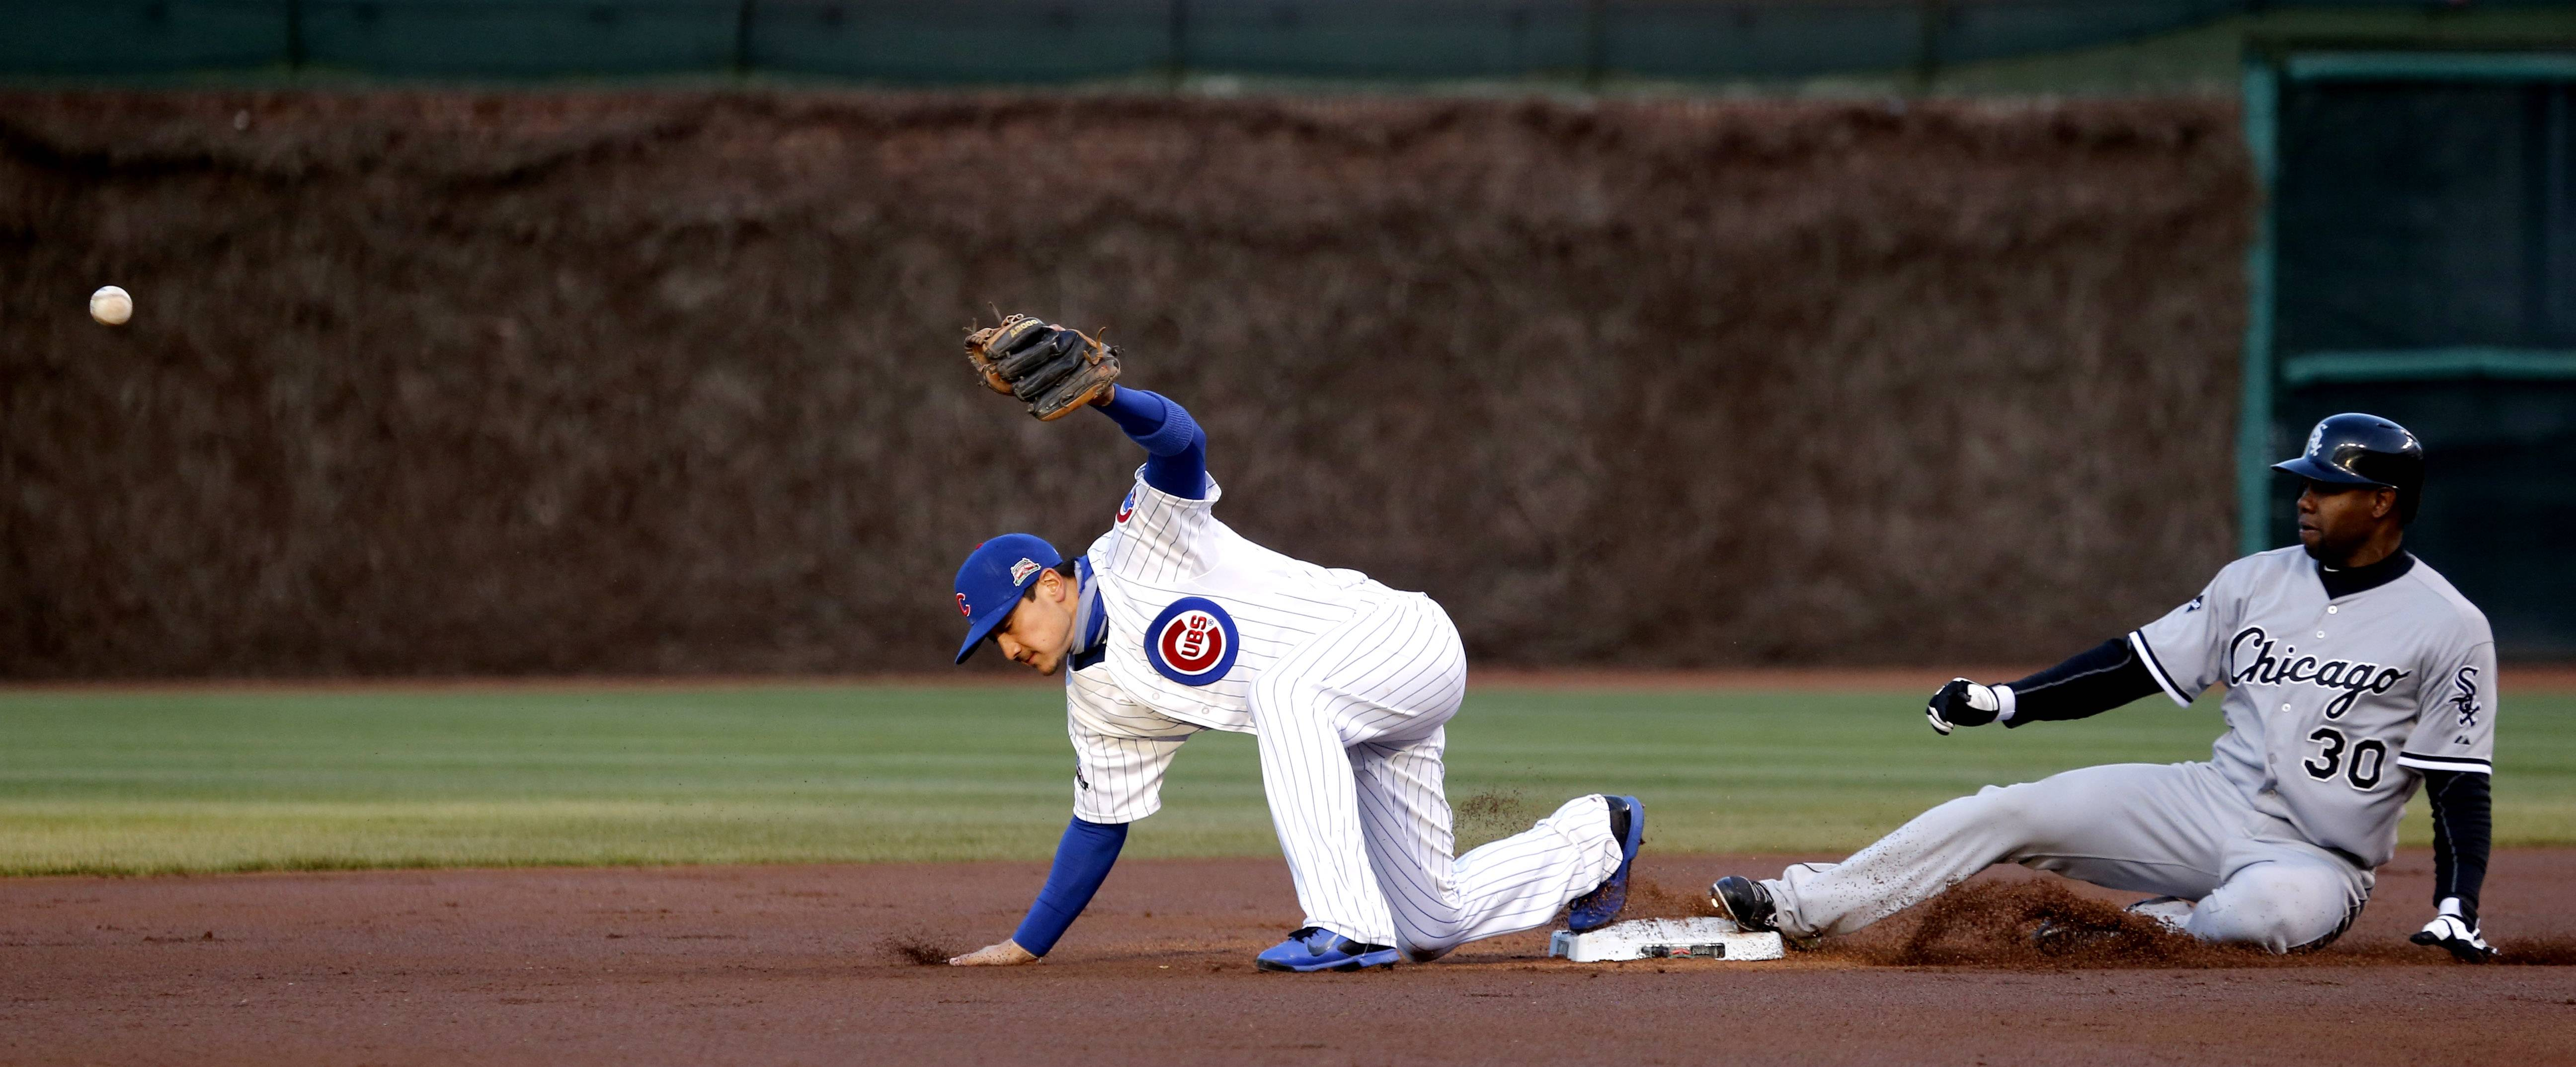 Chicago White Sox's Alejandro De Aza (30) slides safely into second as Chicago Cubs second baseman Darwin Barney is unable to handle a throw from third baseman Mike Olt, during the first inning of an interleague baseball game Monday, May 5, 2014, in Chicago. (AP Photo/Charles Rex Arbogast)